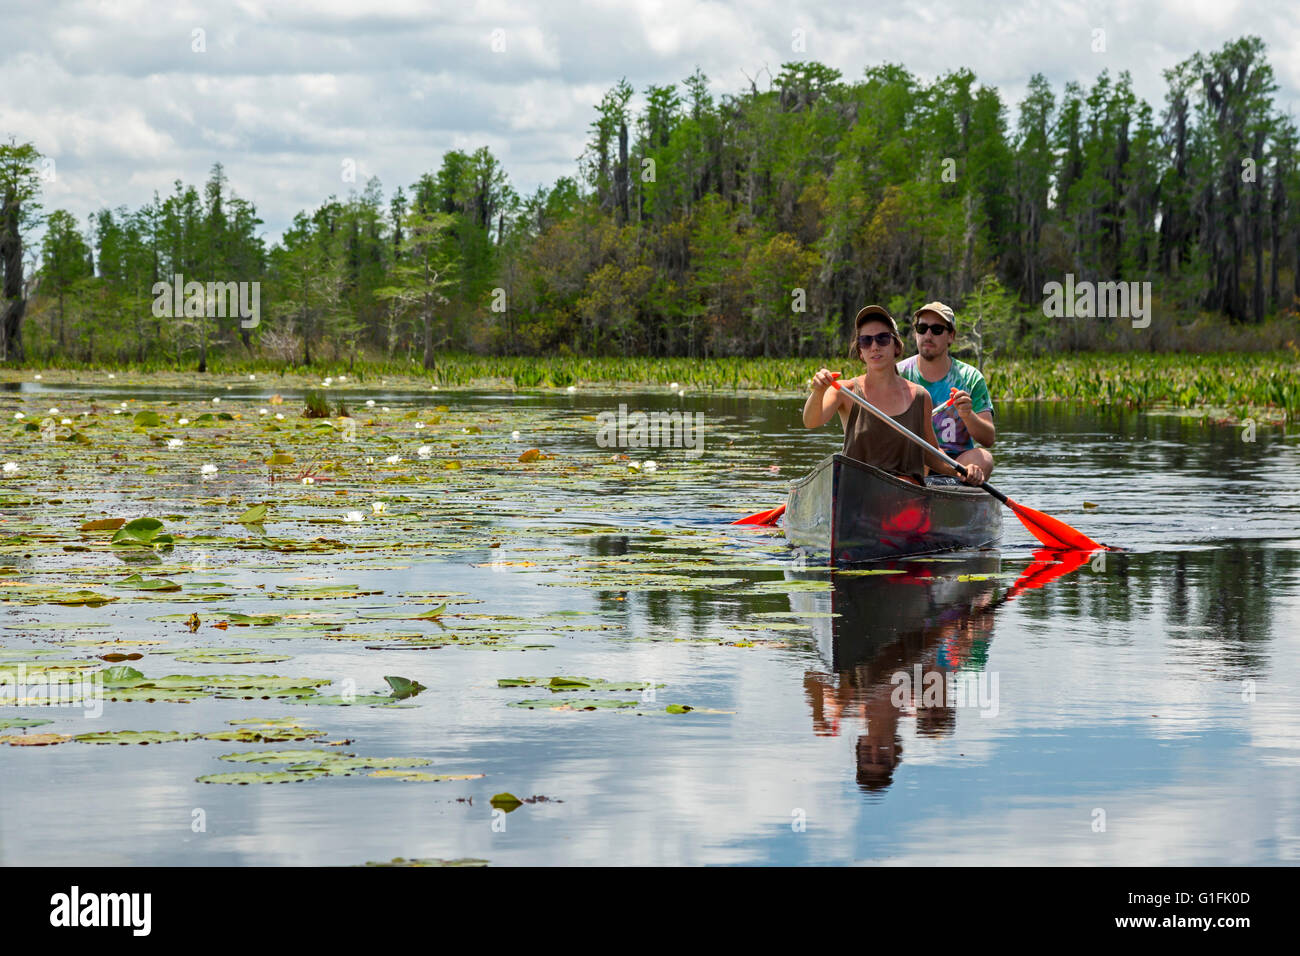 Folkston, Georgia - Gente canotaje en el Okefenokee National Wildlife Refuge. Imagen De Stock